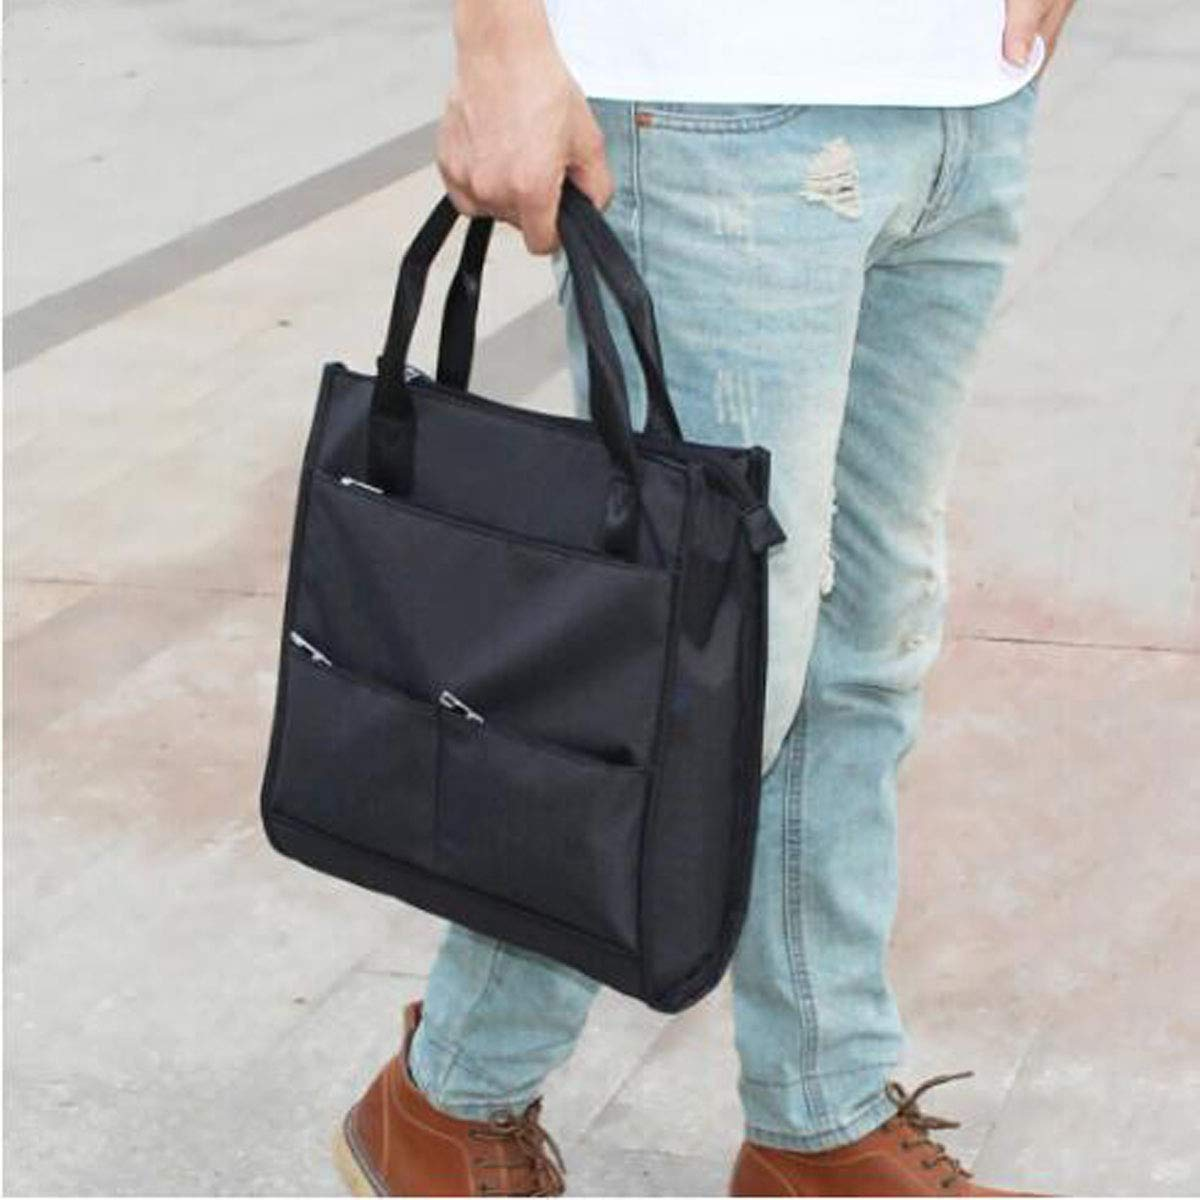 Yougou01 Briefcase Color : Black Size: 32930cm Quality Assured Suitable for Work Simple Mens Nylon Casual Crossbody Bag Business Travel Waterproof and Wearable